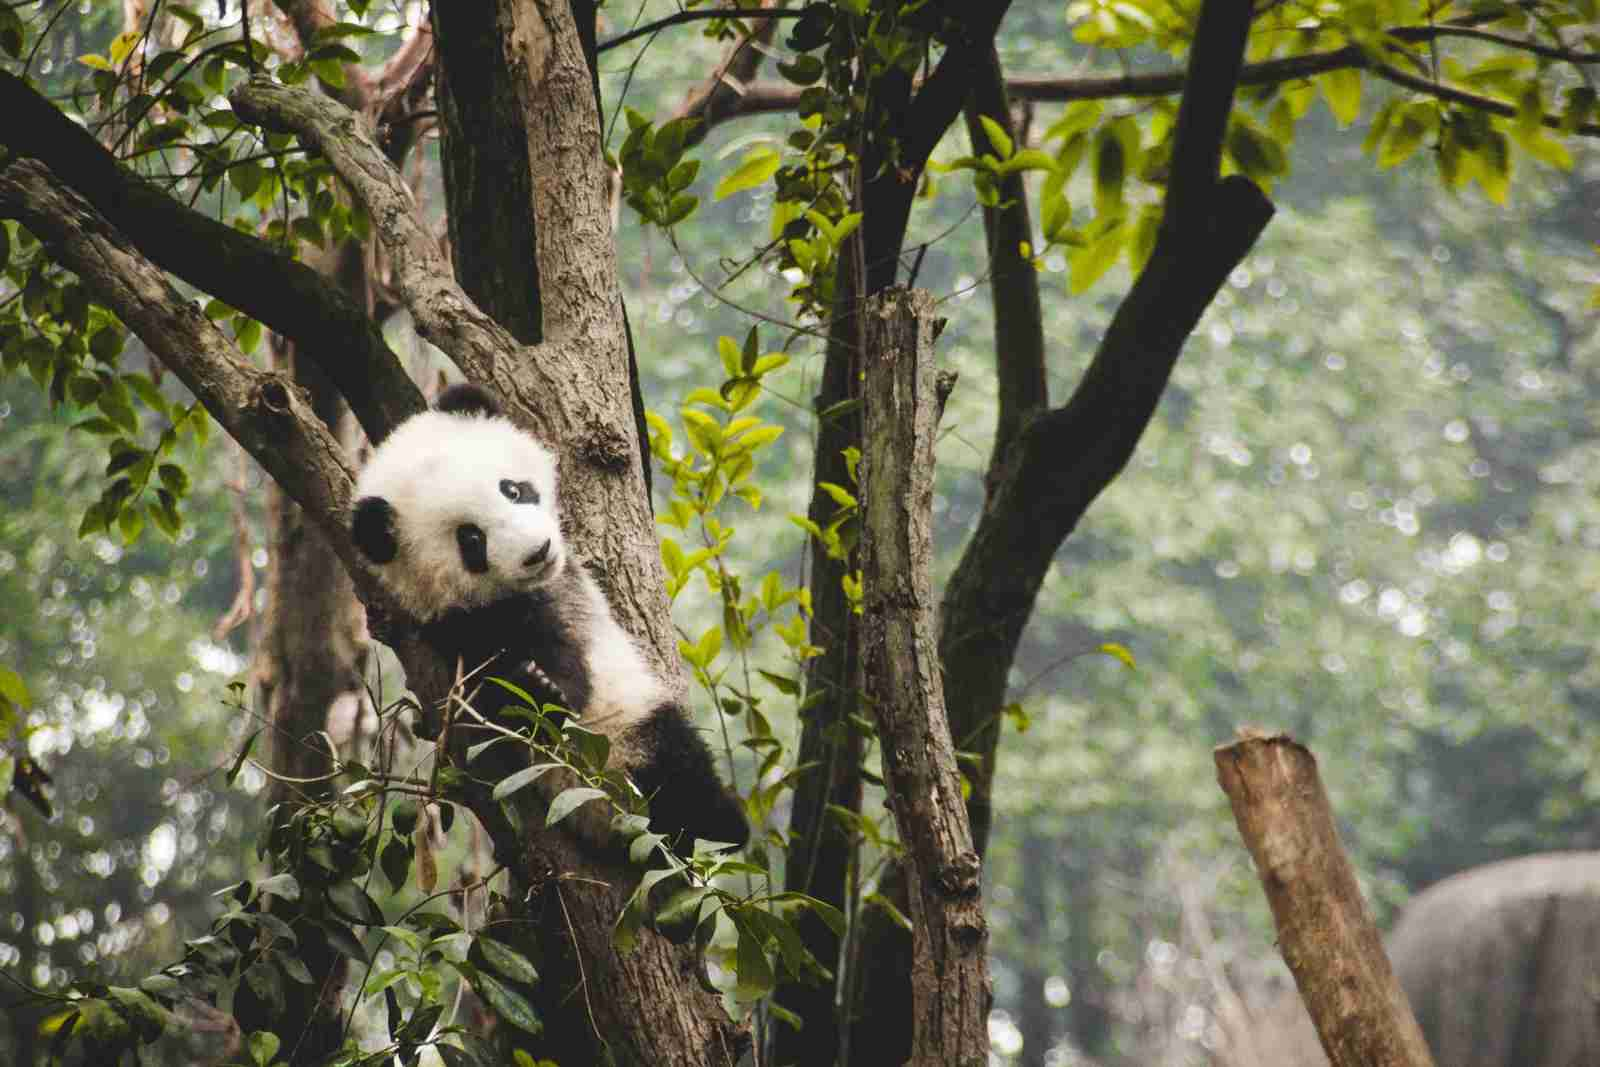 Giant pandas at a research center in Chengdu. (Photo by Theodor Lundqvist/Unsplash)